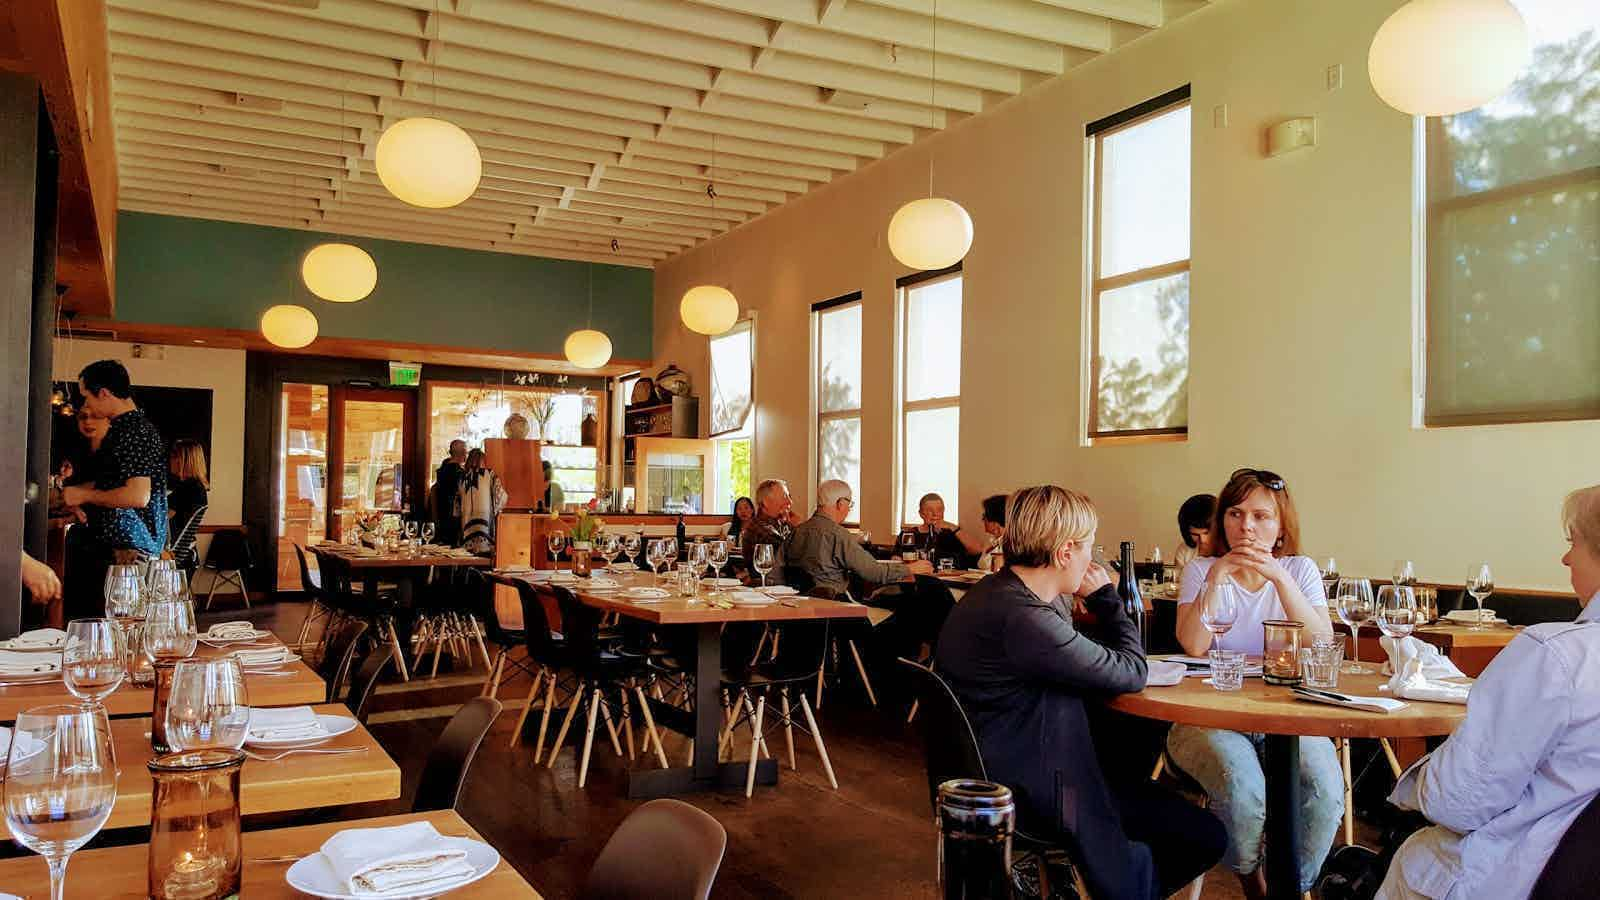 Best Restaurants in Dogpatch - Zagat